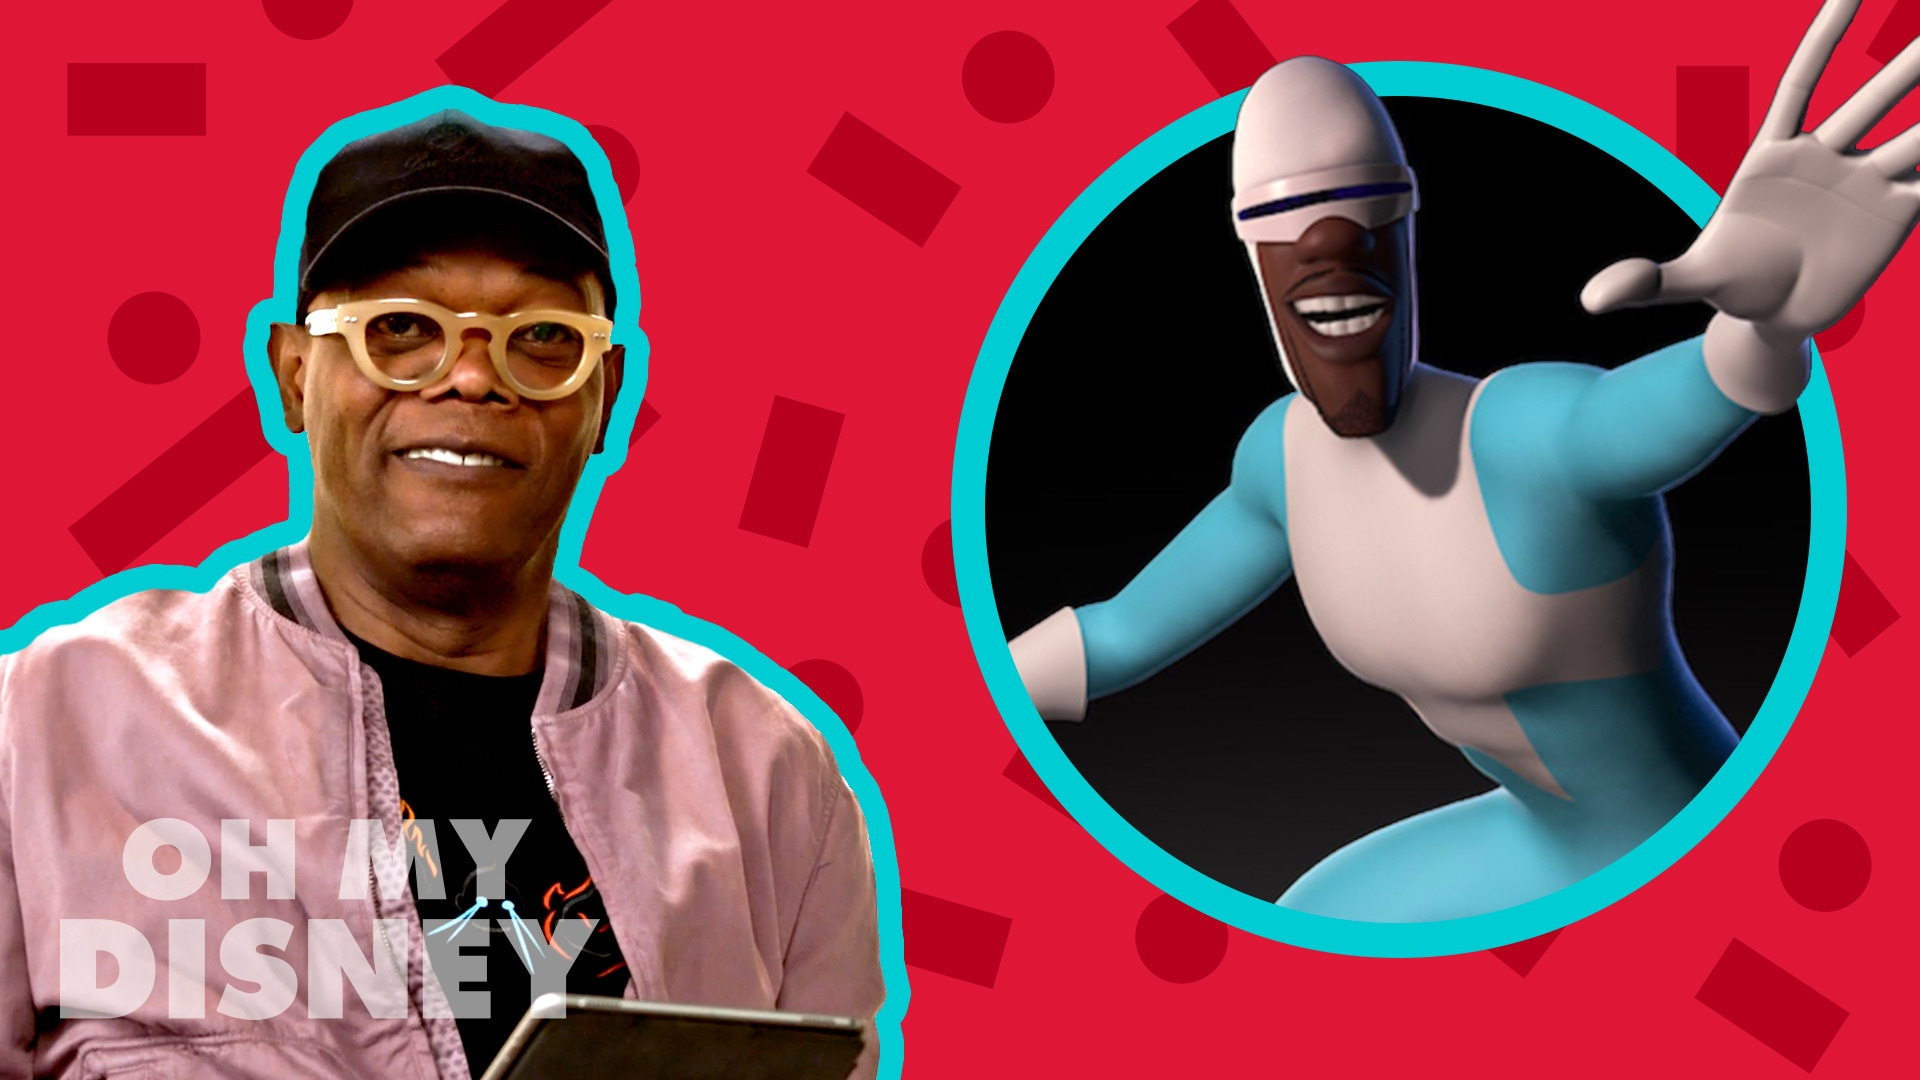 Samuel L. Jackson Finds His Super Suit for Incredibles 2 | The Oh My Disney Show by Oh My Disney